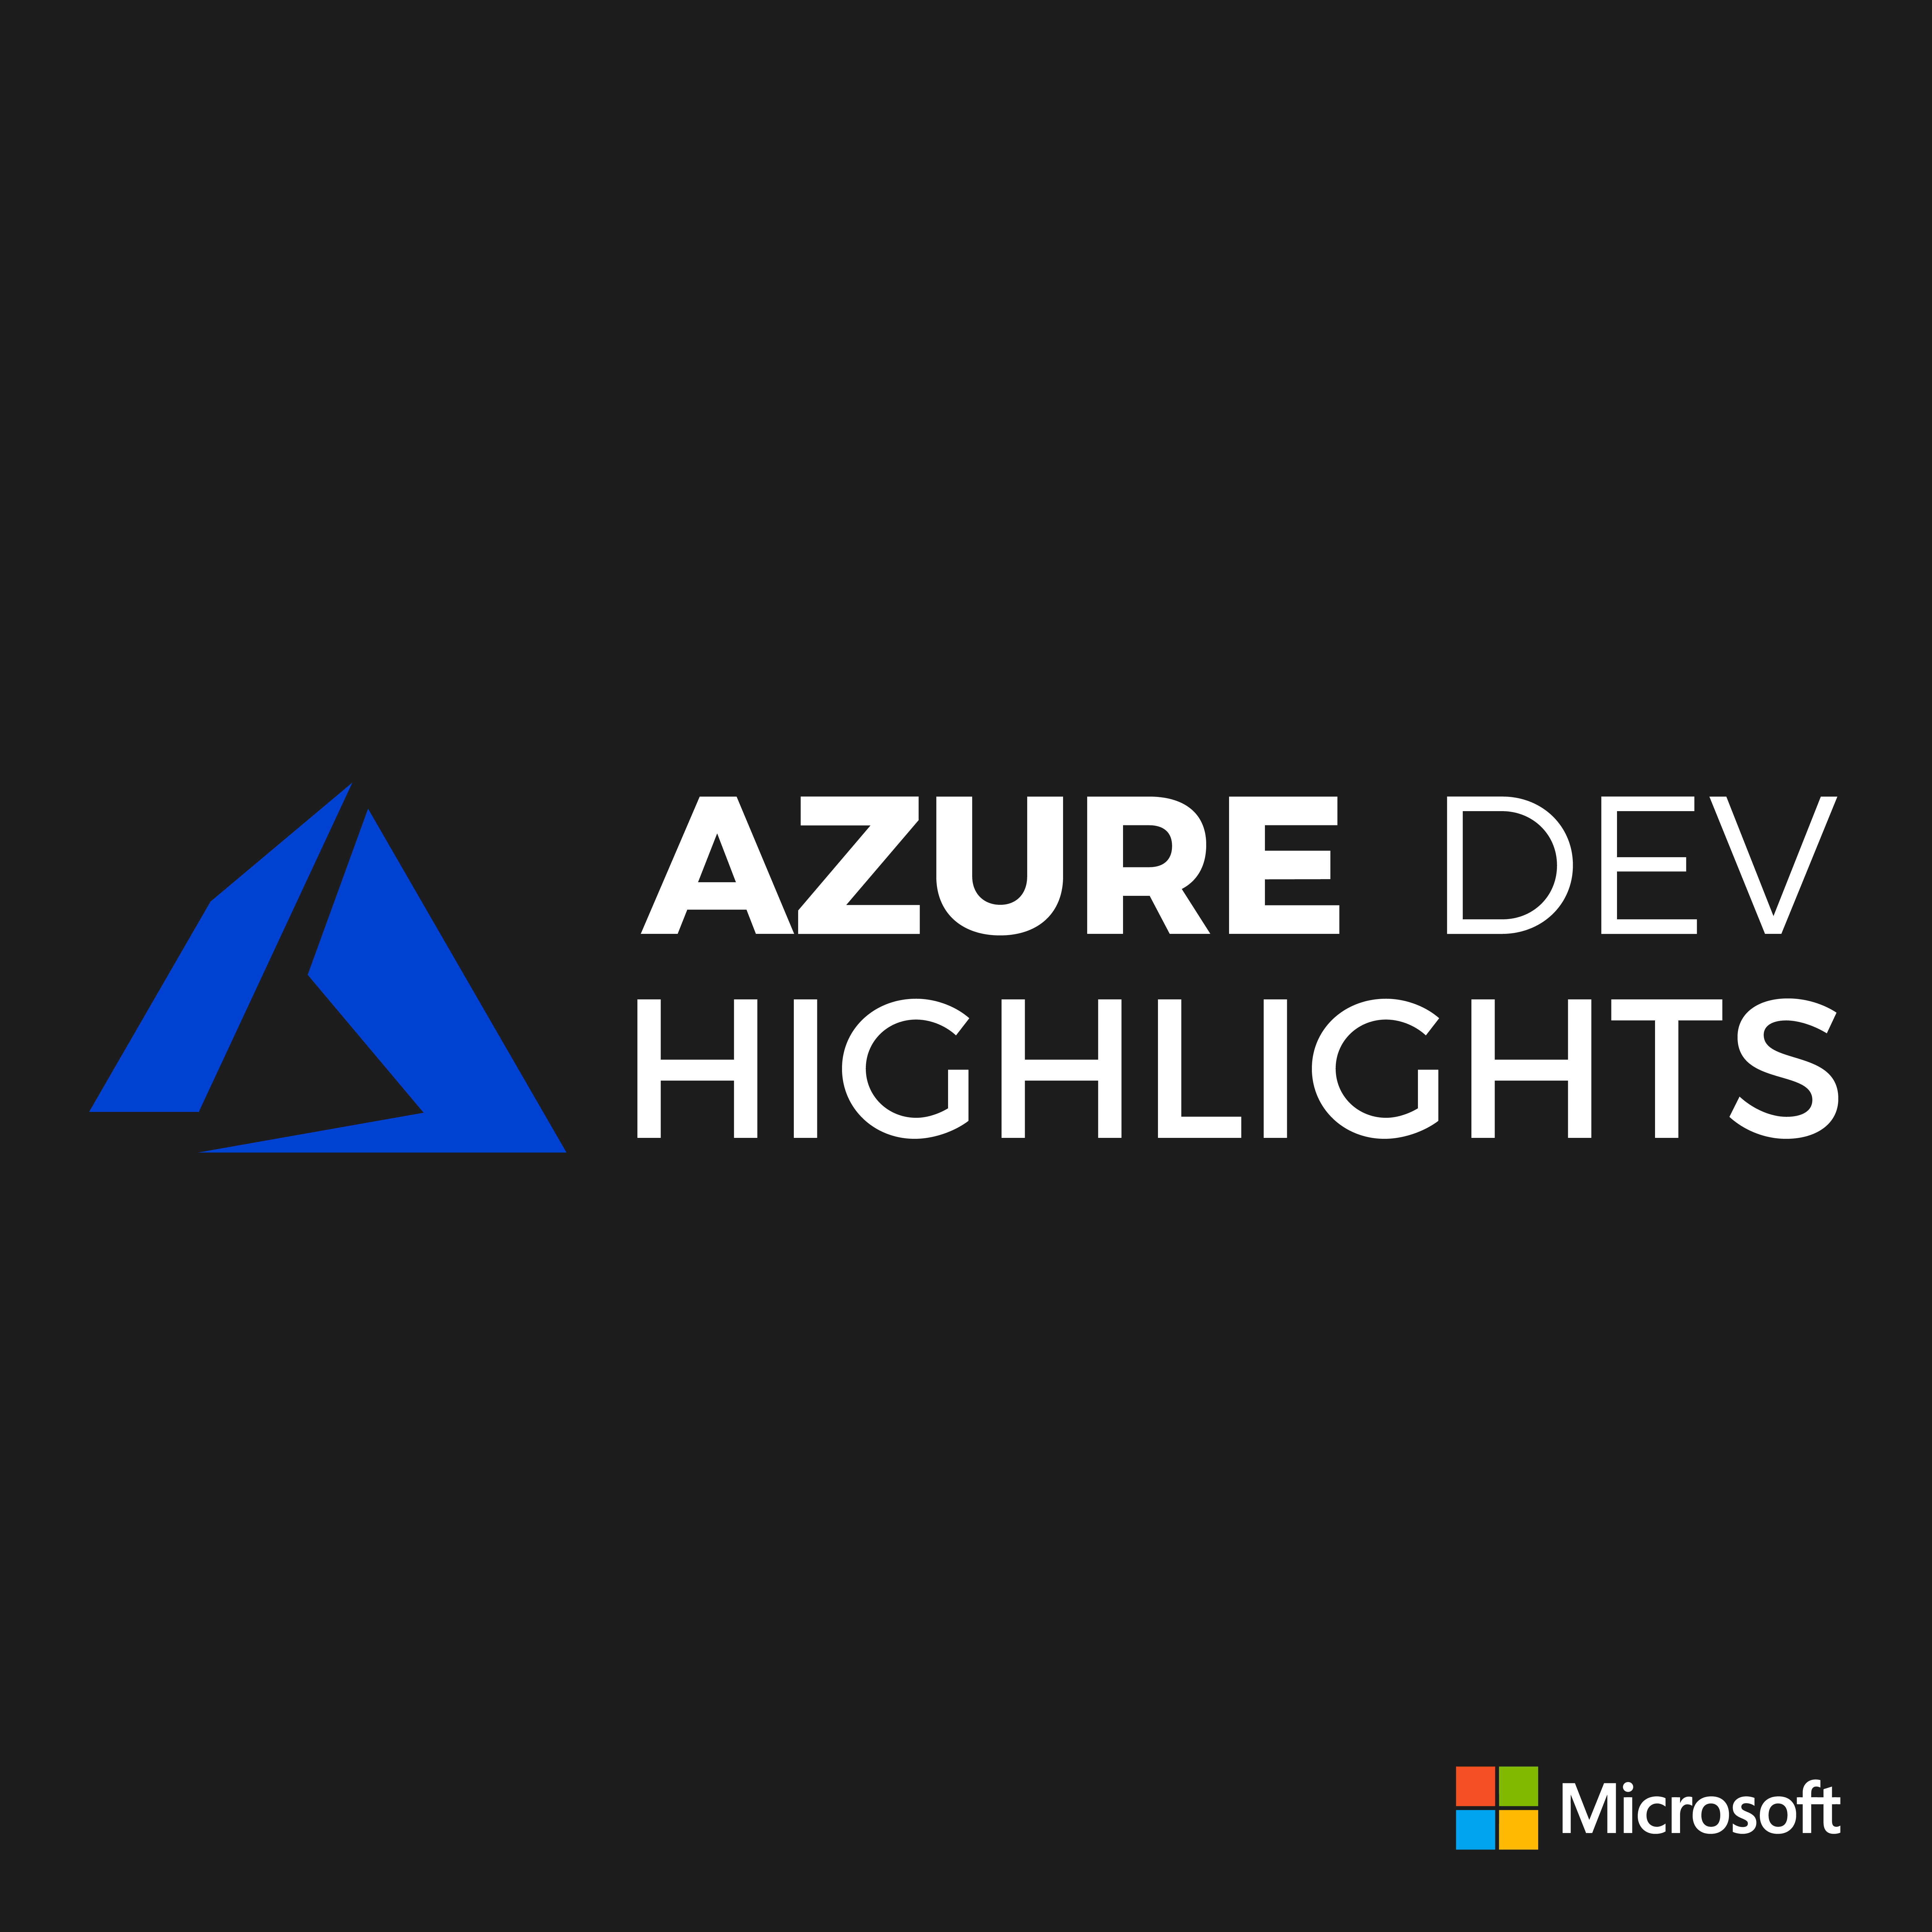 Azure Dev Highlights